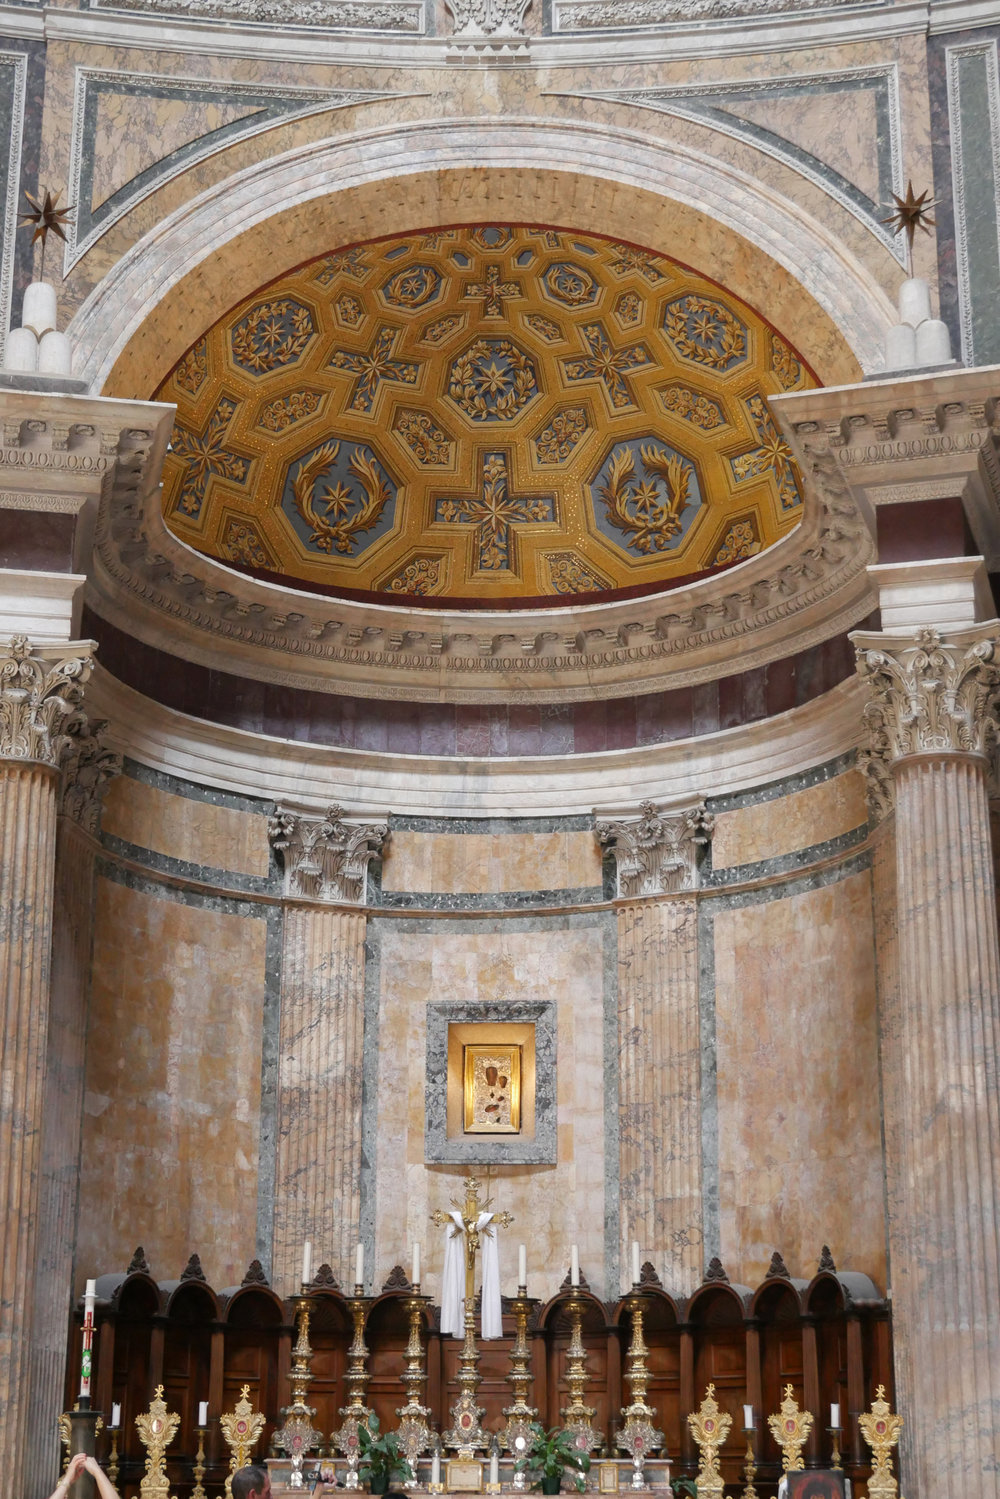 Inside-the-Pantheon-gilded-gold-Rome.jpg